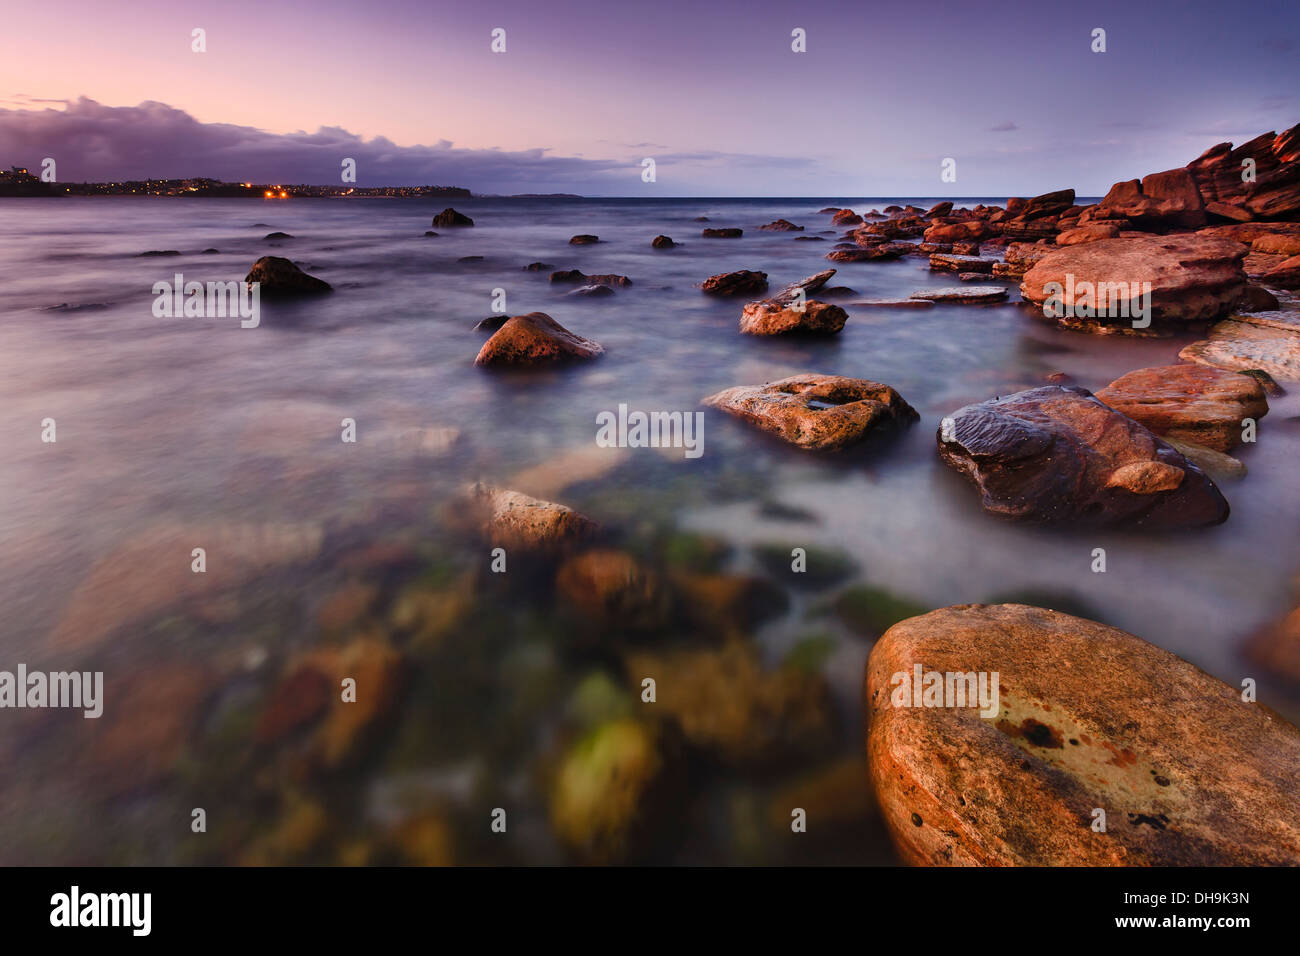 sydney australia manly shelly beach wet rocky stones at sunset transparent surf blurred waves with long exposure - Stock Image